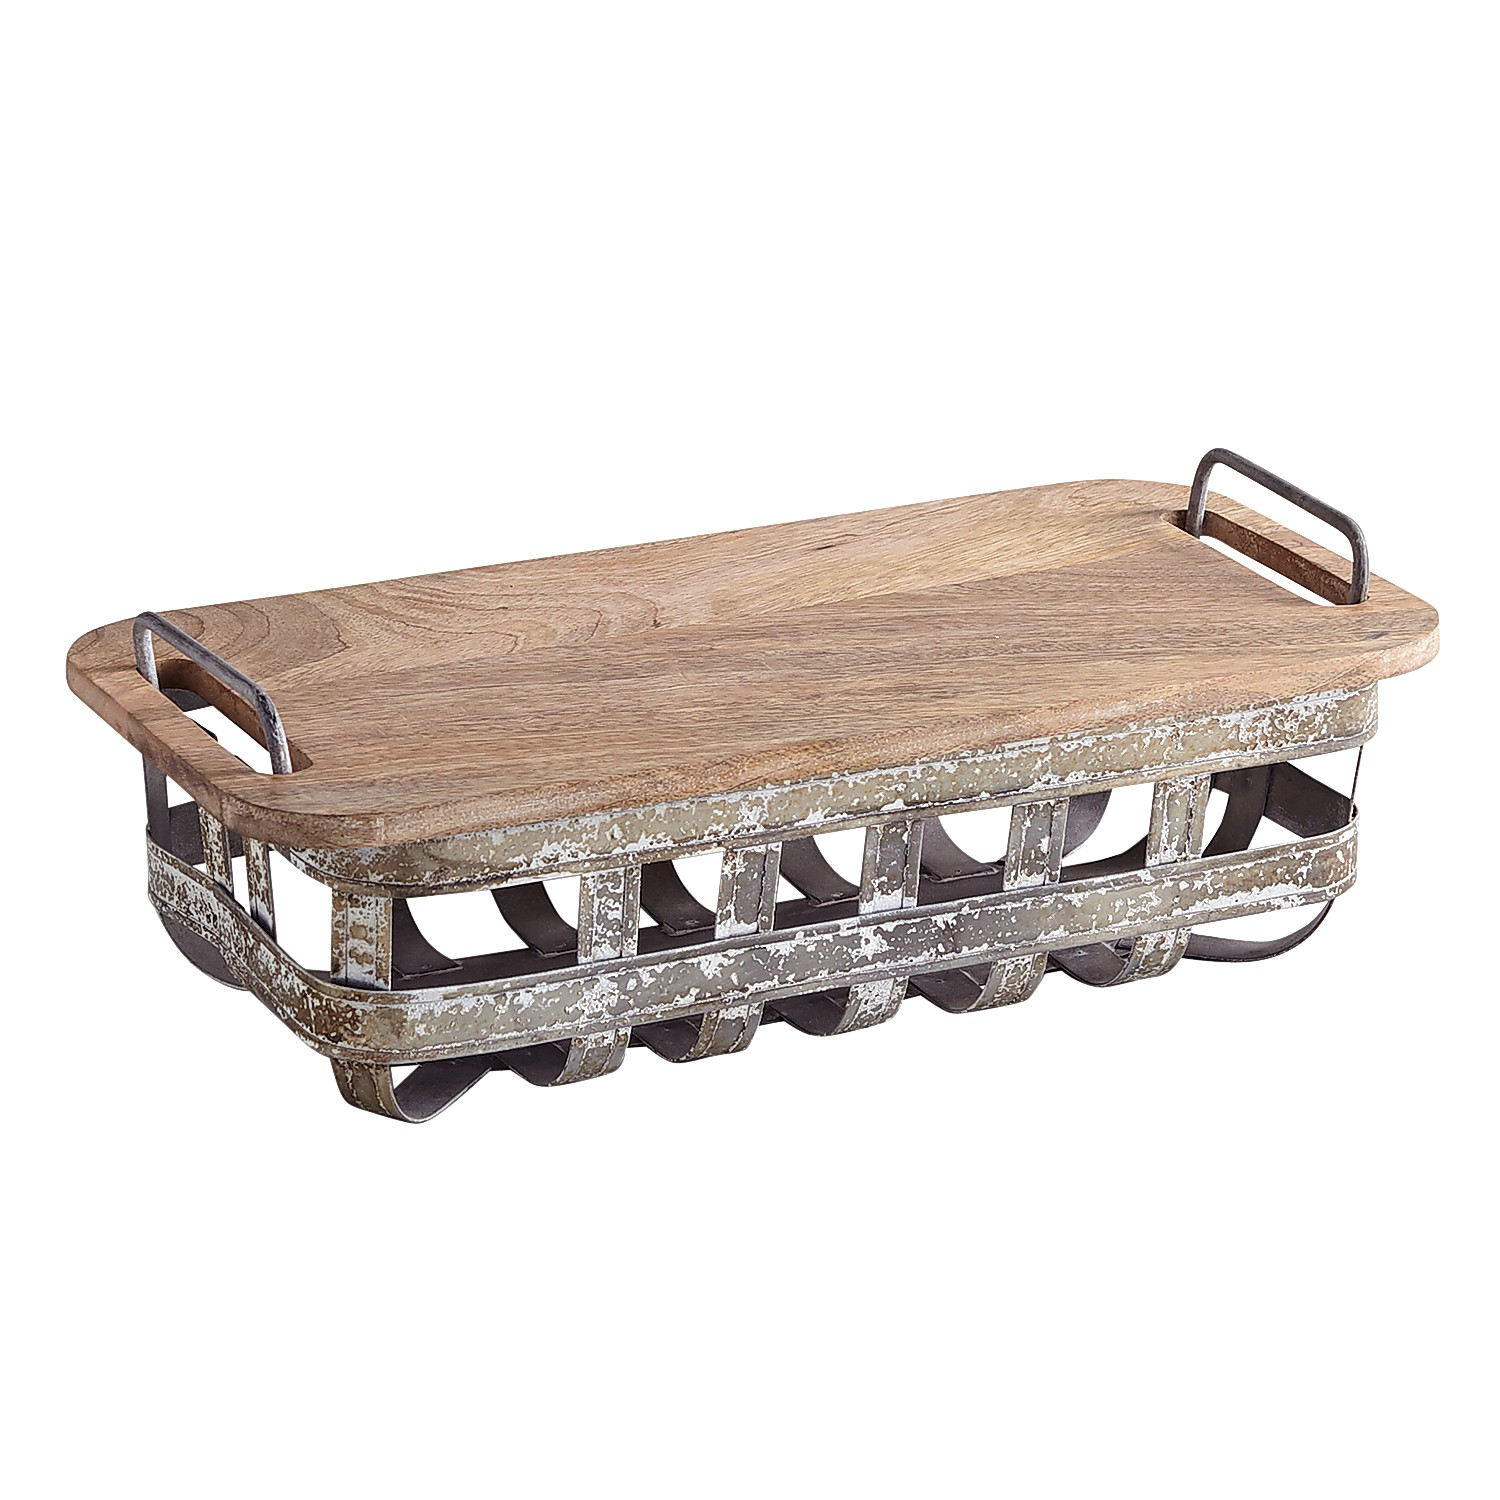 variation thumbnail of Weston Bread Basket with Serving Board